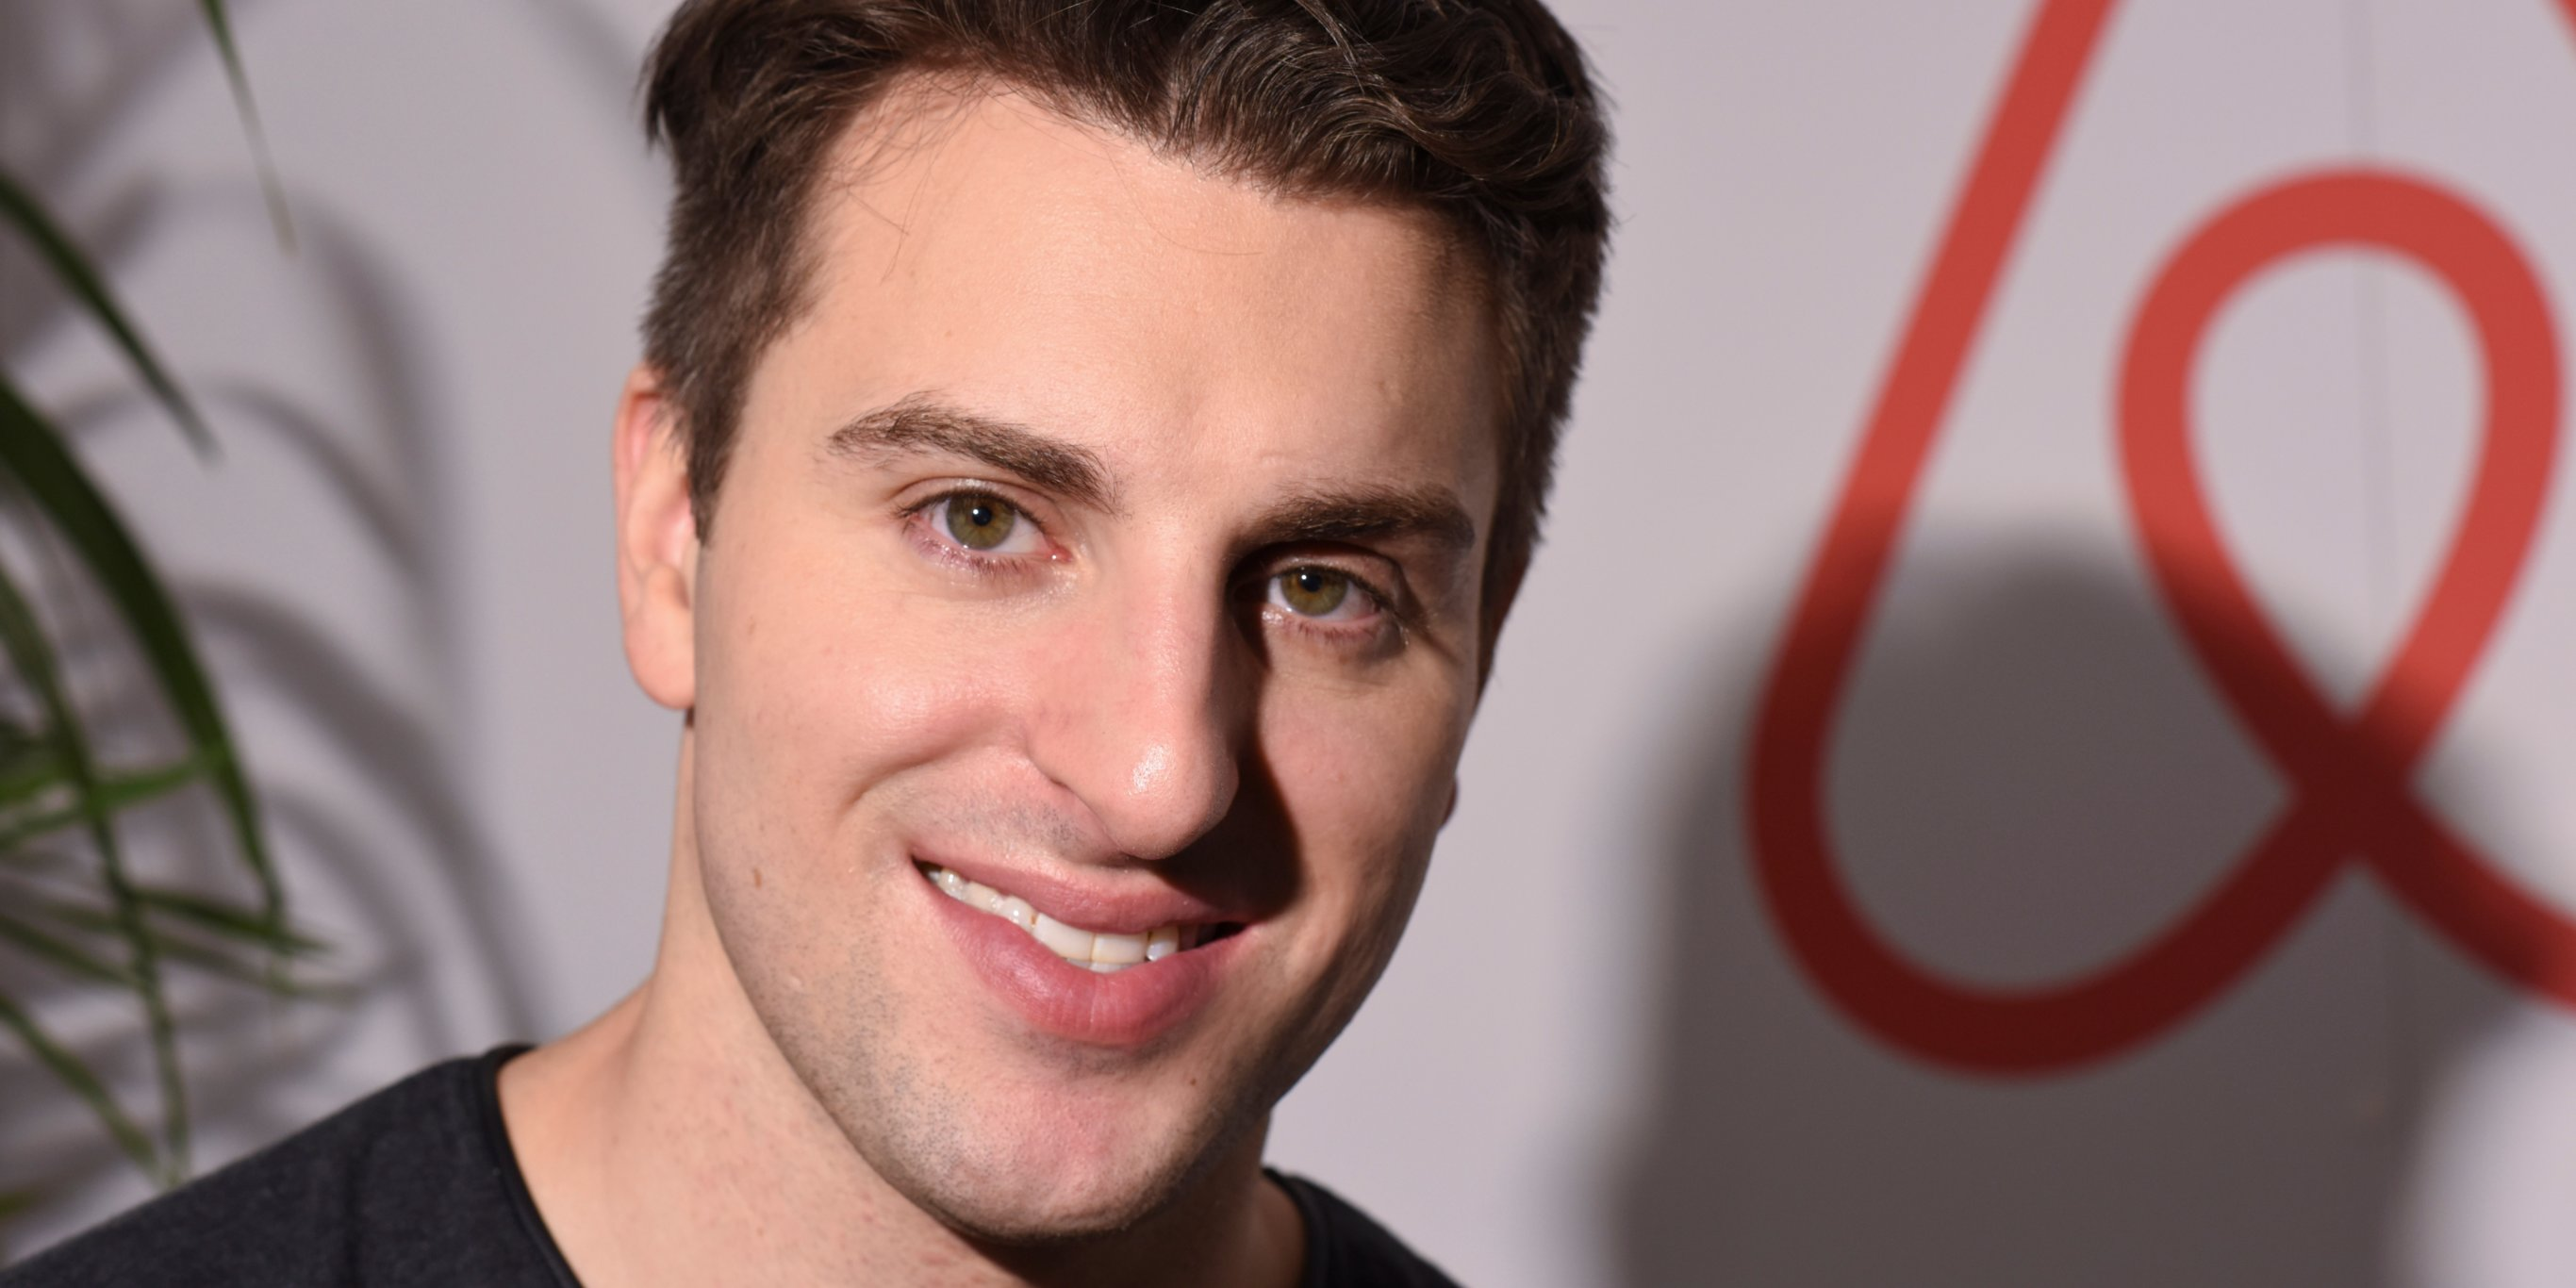 Airbnb just announced it expects to go public in 2020. Meet CEO Brian Chesky, who cofounded the company in 2008 to help pay his San Francisco apartment's rent and is now worth $4.2 billion.